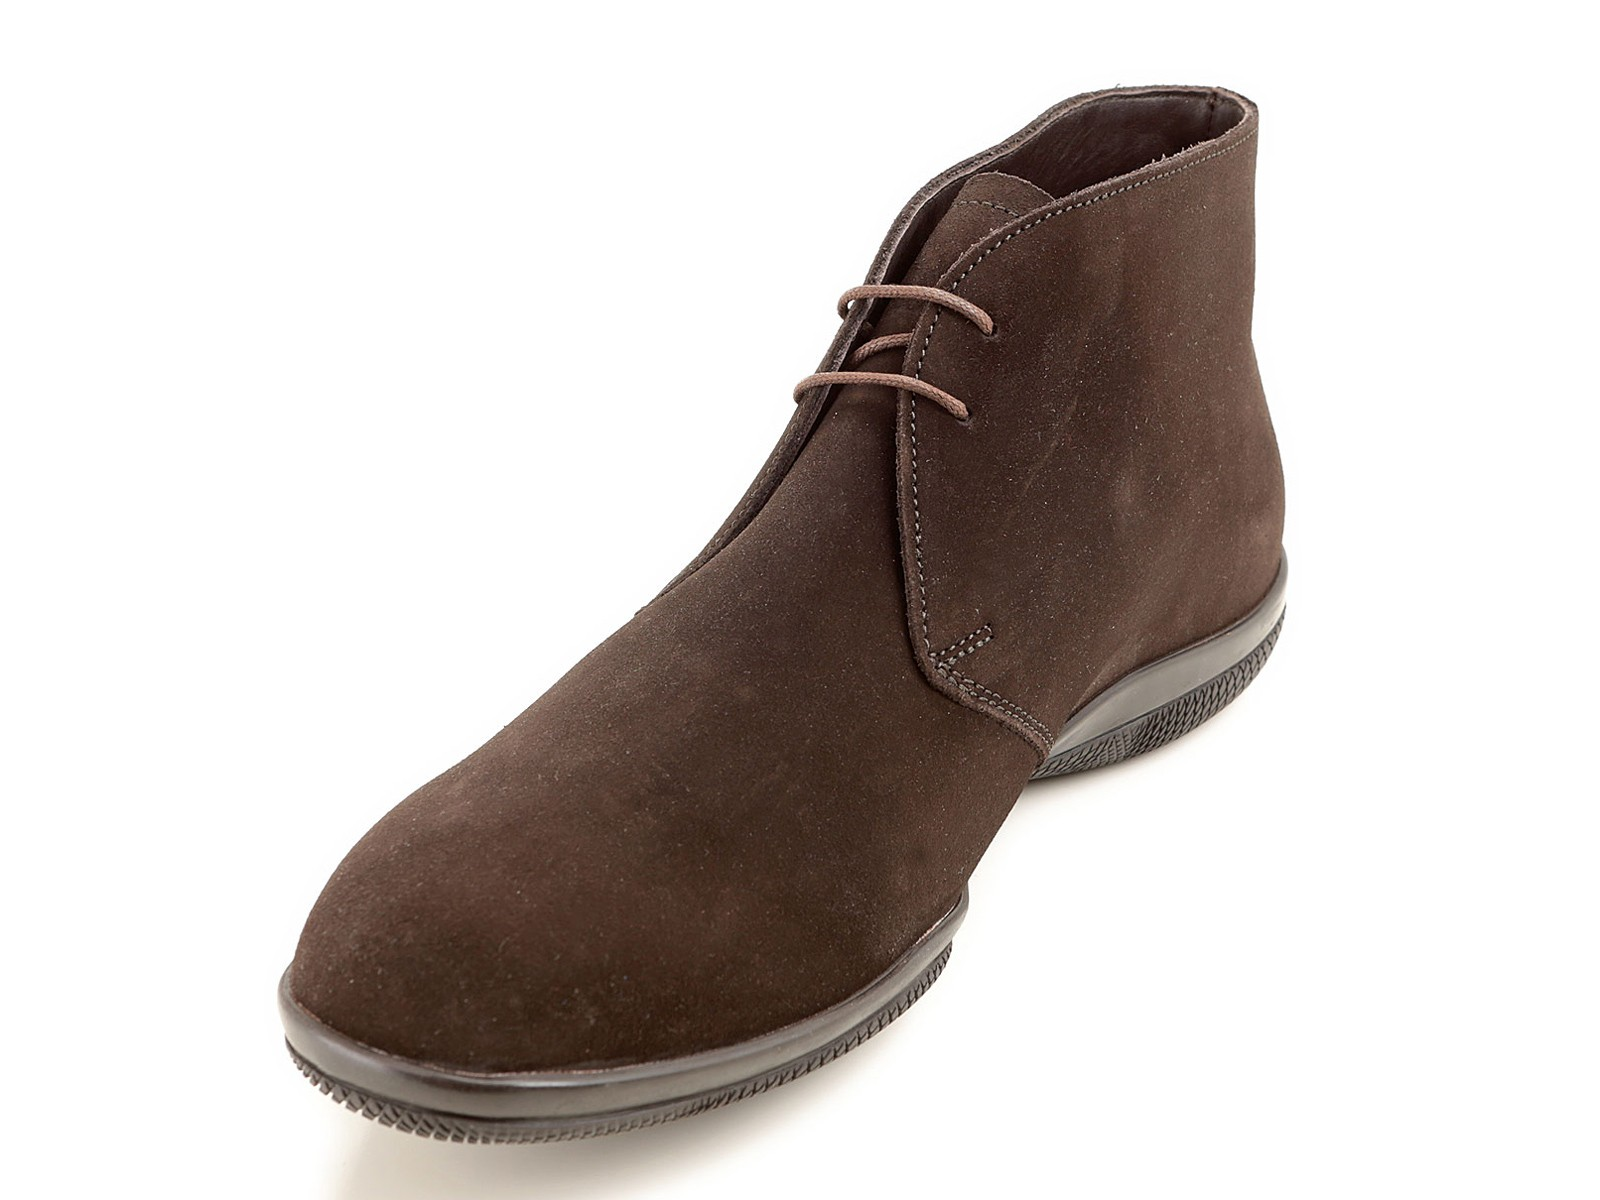 prada s desert boots in brown suede leather mod